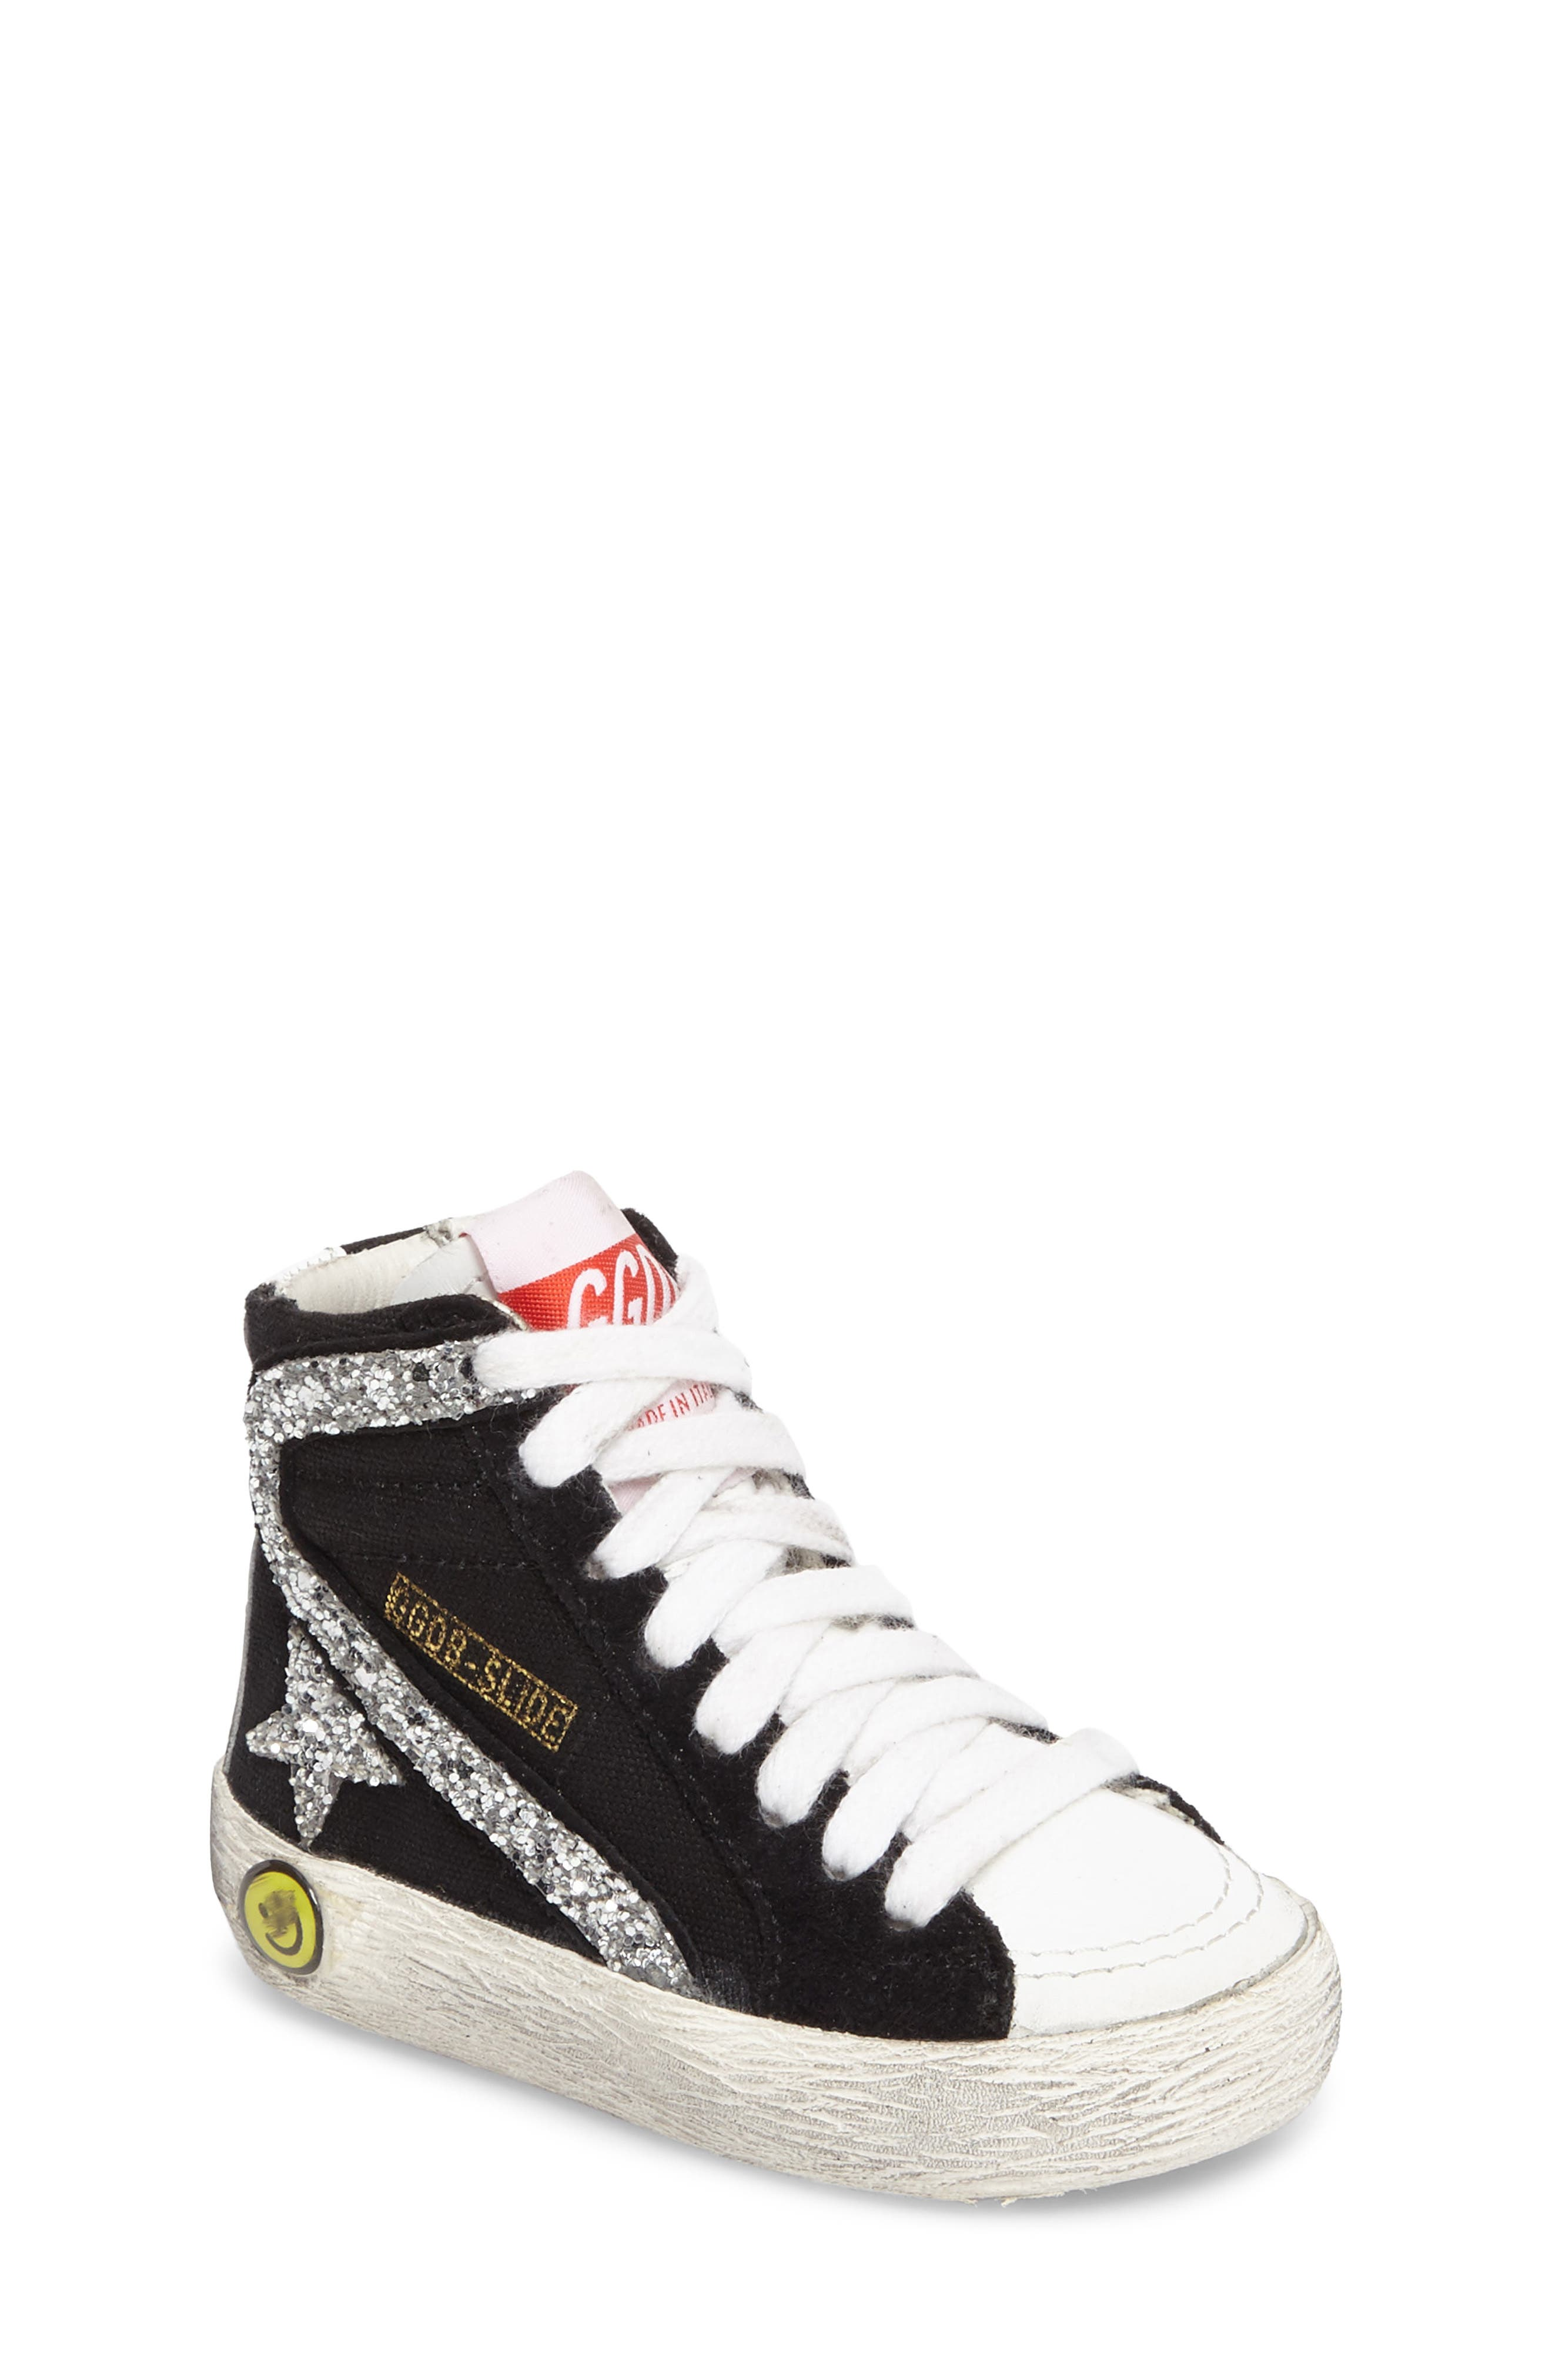 Golden Goose Slide Glittery High Top Sneaker (Baby, Walker, Toddler, Little Kid & Big Kid)